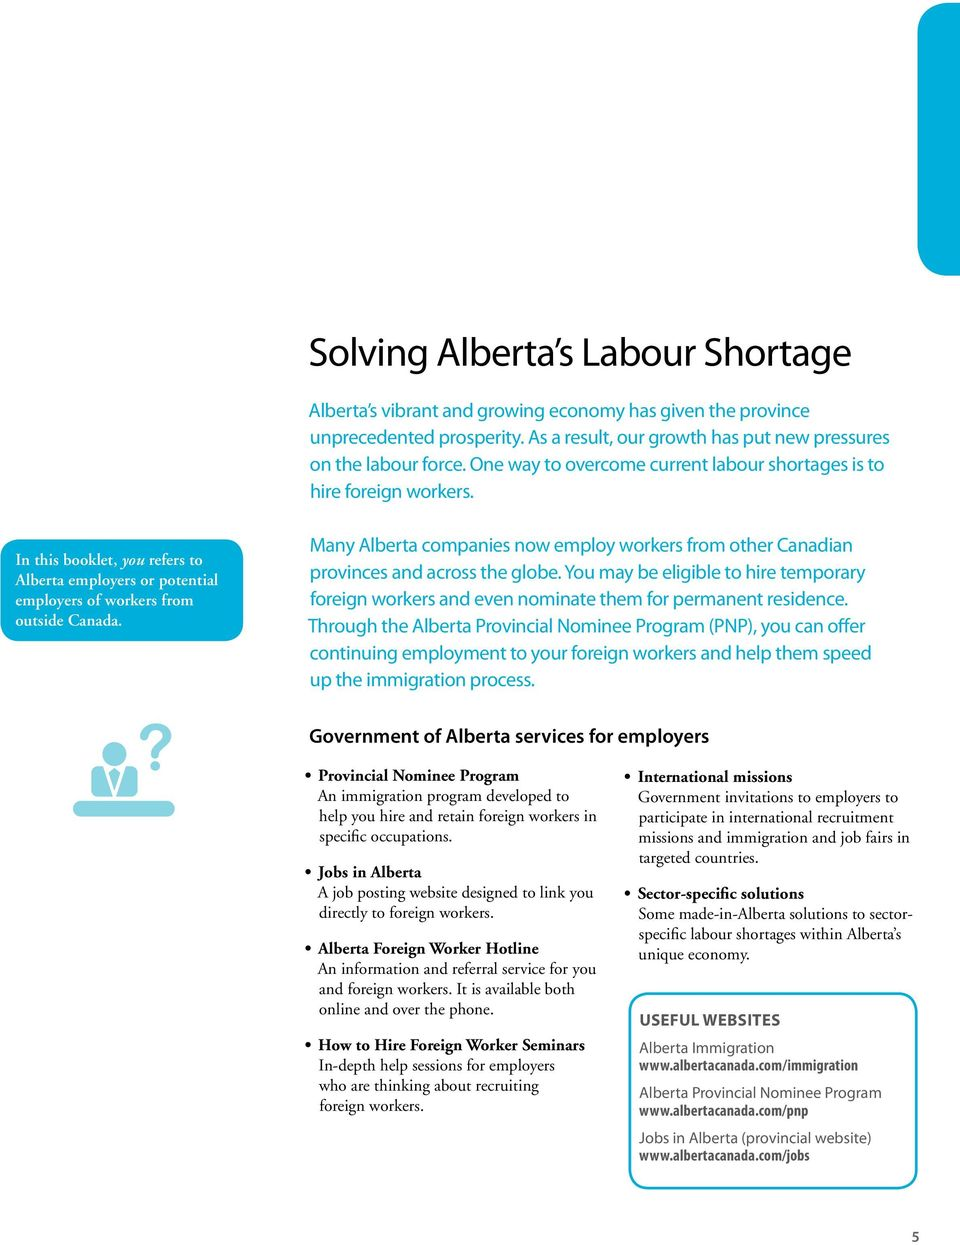 Hiring Foreign Workers in Alberta  Information for employers